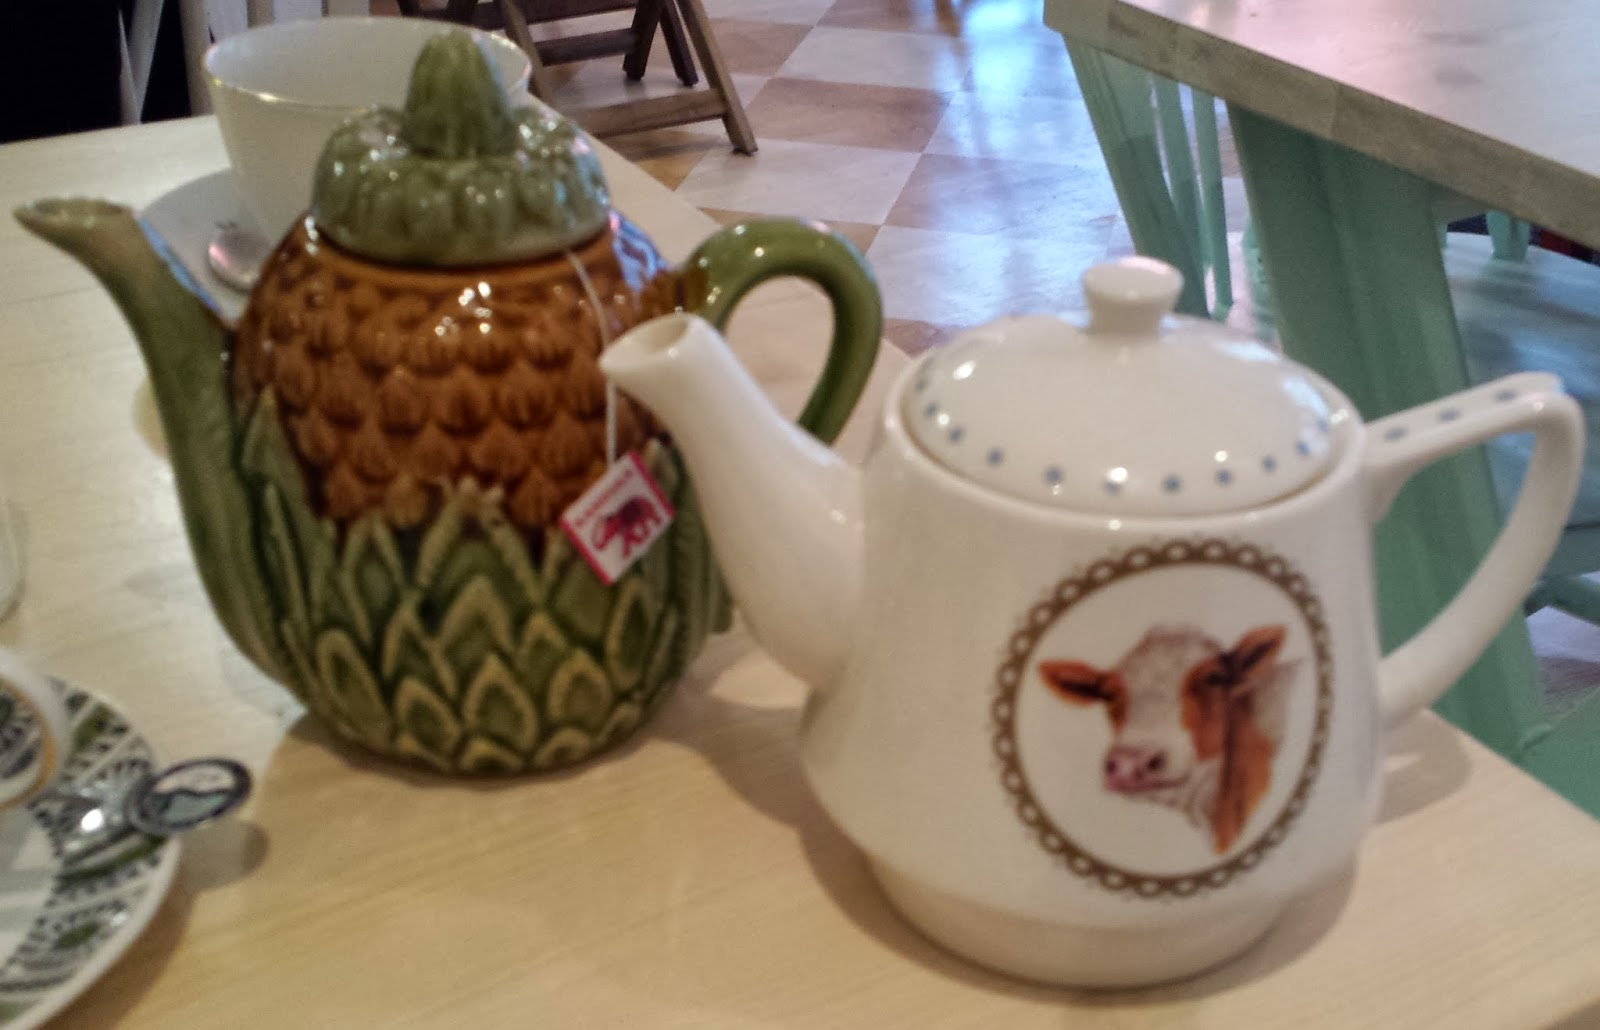 a pineapple teapot and a teapot with a picture of a cow on it